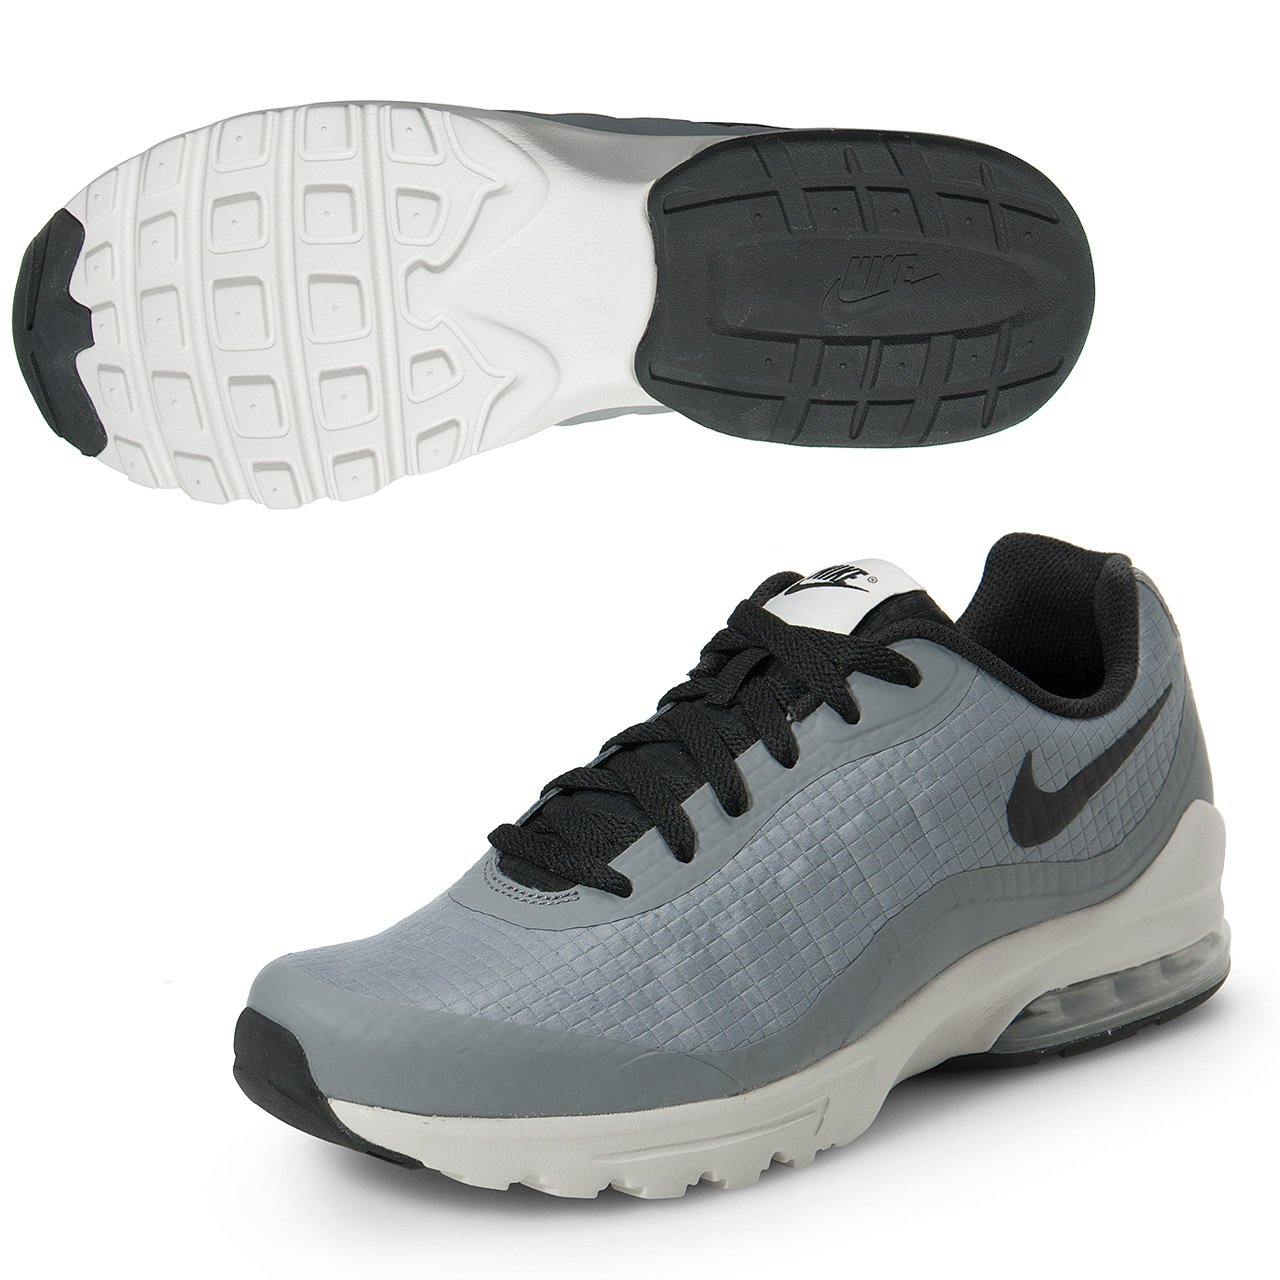 Nike Men's Air Max Invigor SE Cool Grey/Light Bone/Black Athletic Shoe Size 10.5 D (M) US by NIKE